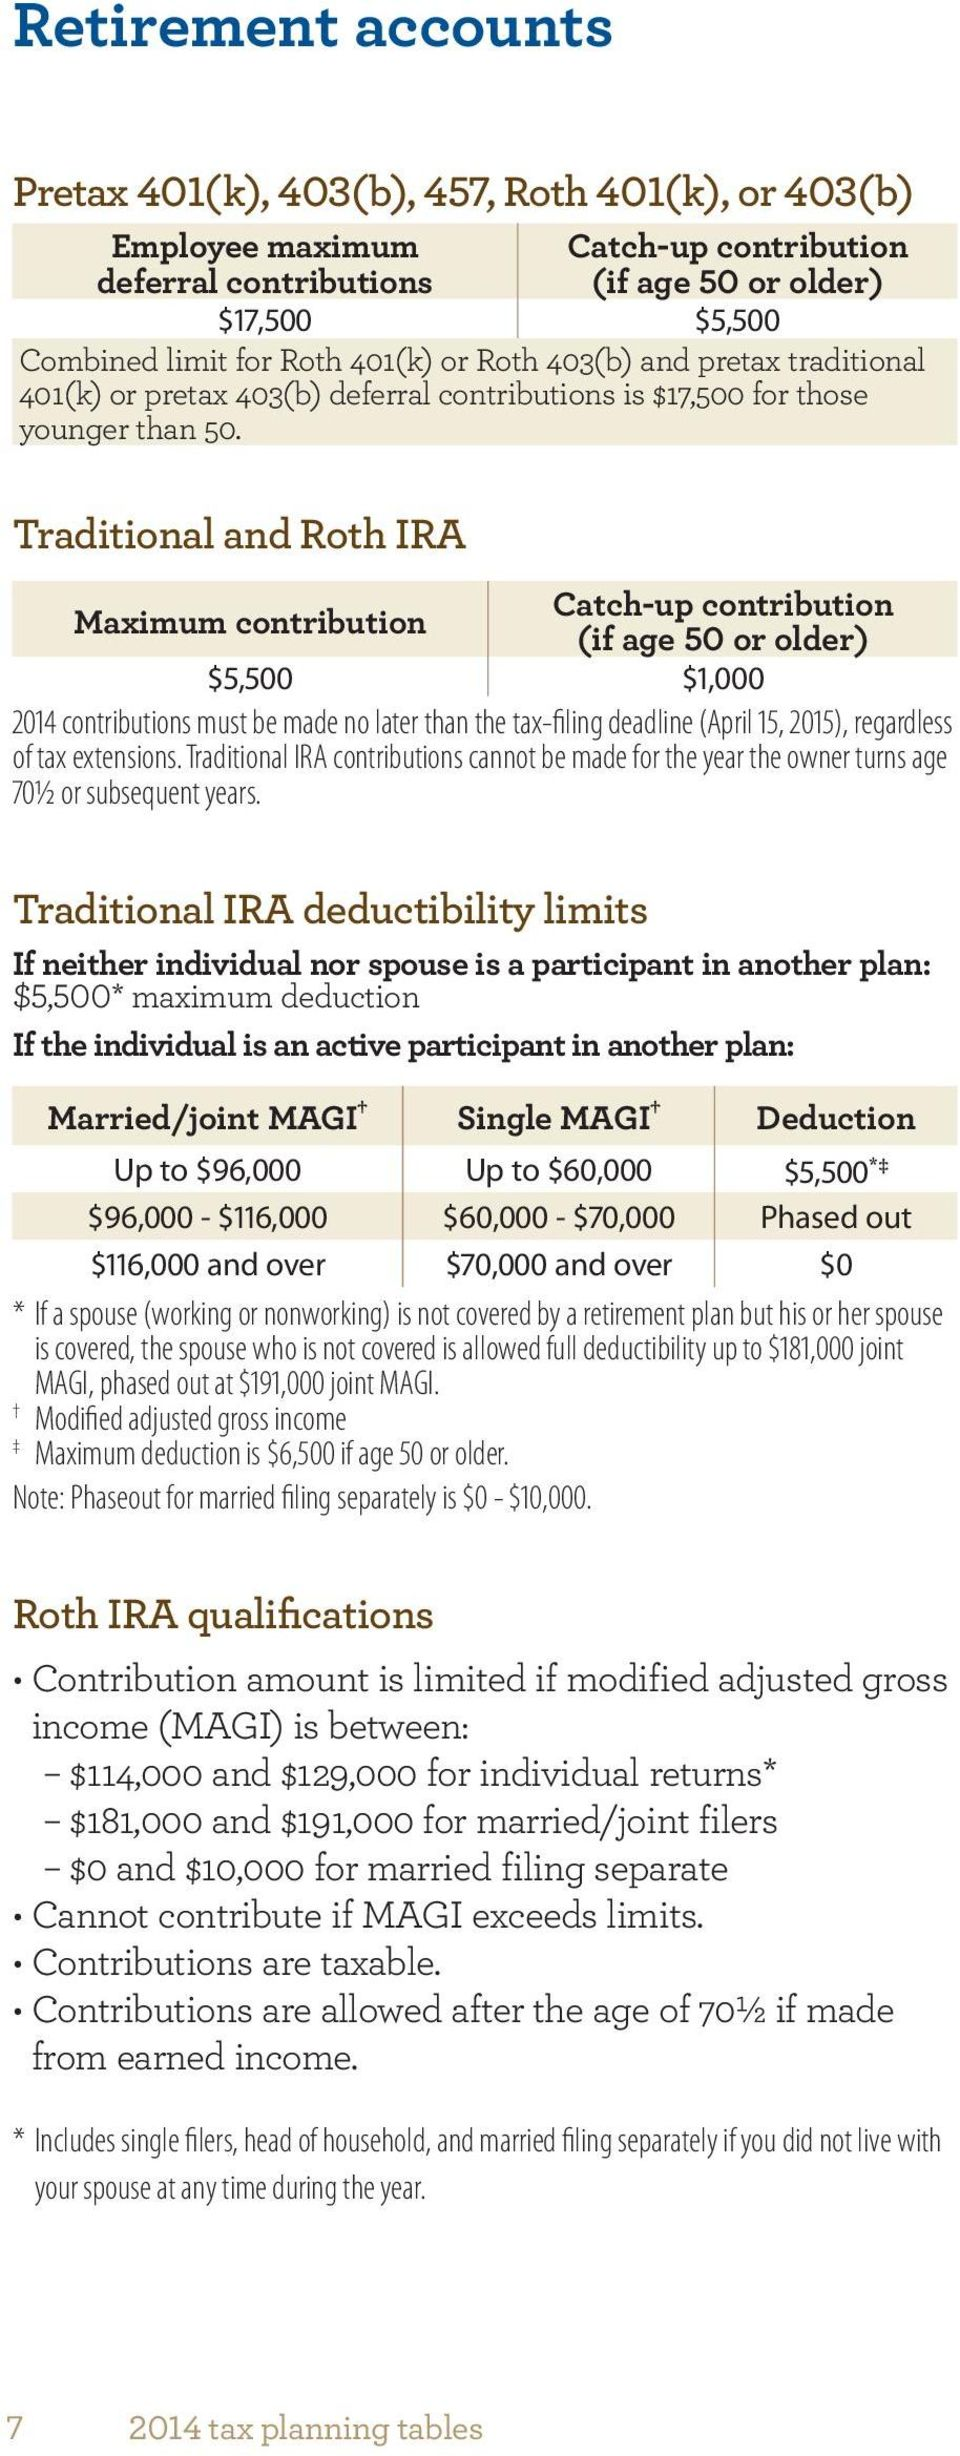 Traditional and Roth IRA Maximum contribution Catch-up contribution (if age 50 or older) $5,500 $1,000 2014 contributions must be made no later than the tax-filing deadline (April 15, 2015),